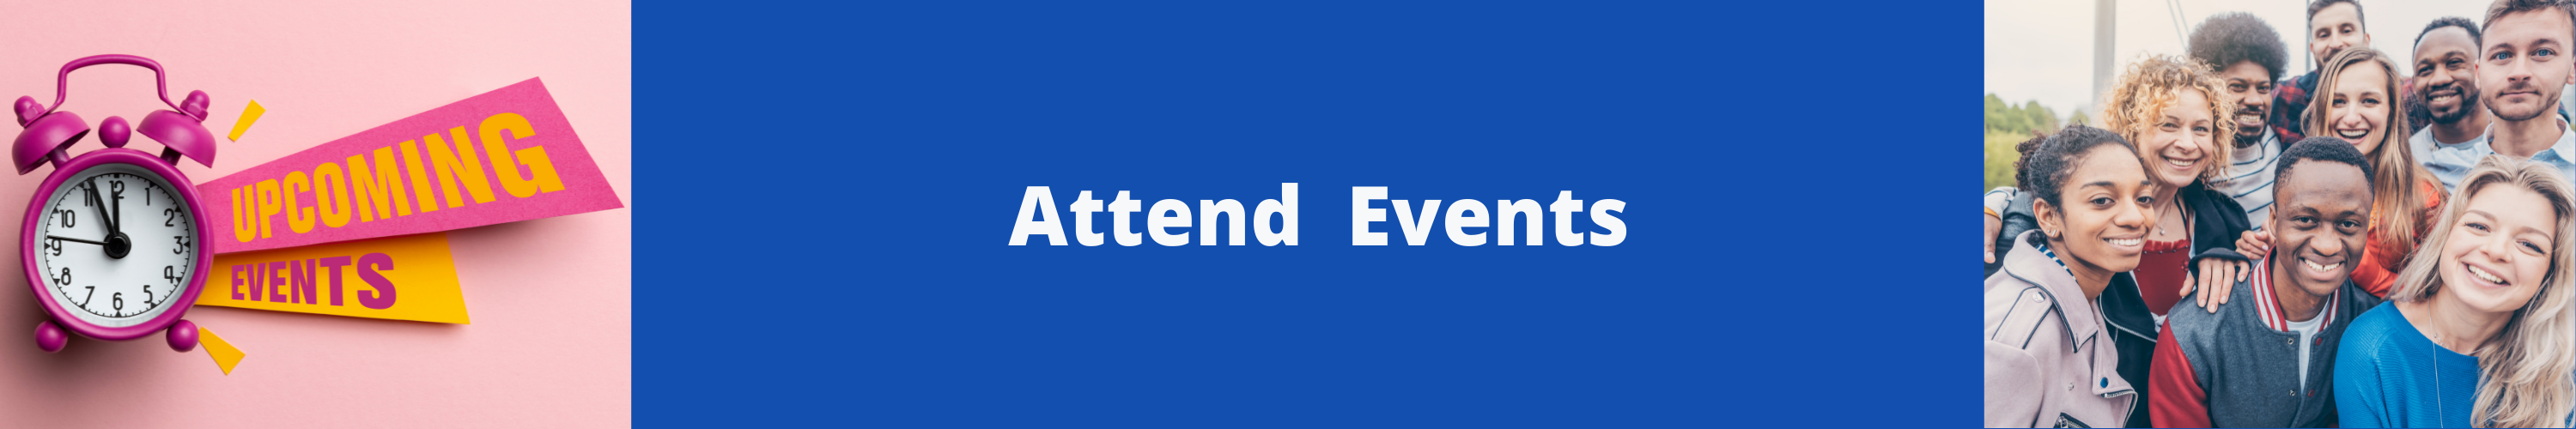 attend_events.png